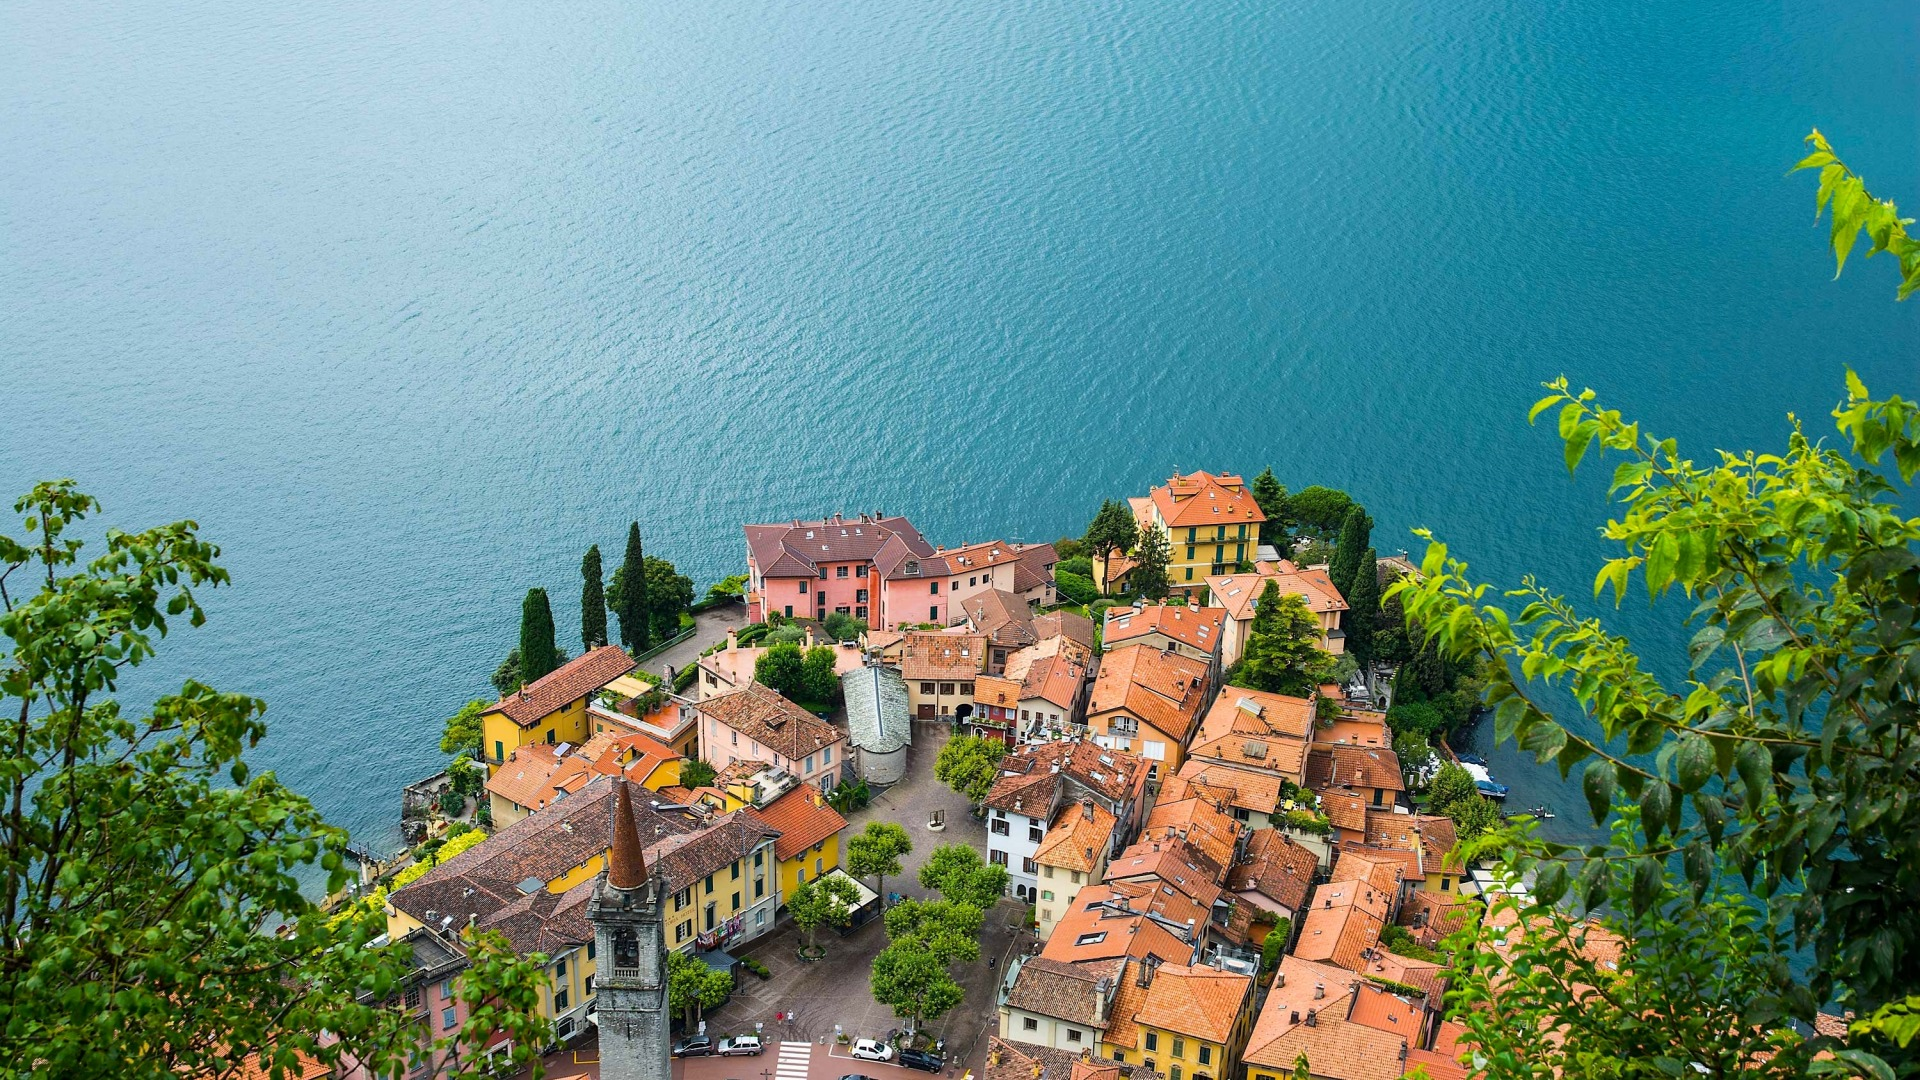 Download-Lake-Como-Varenna-Lombardy-Italy-panorama-roof-Varenna-lake-building-Lom-wallpaper-wp3605116